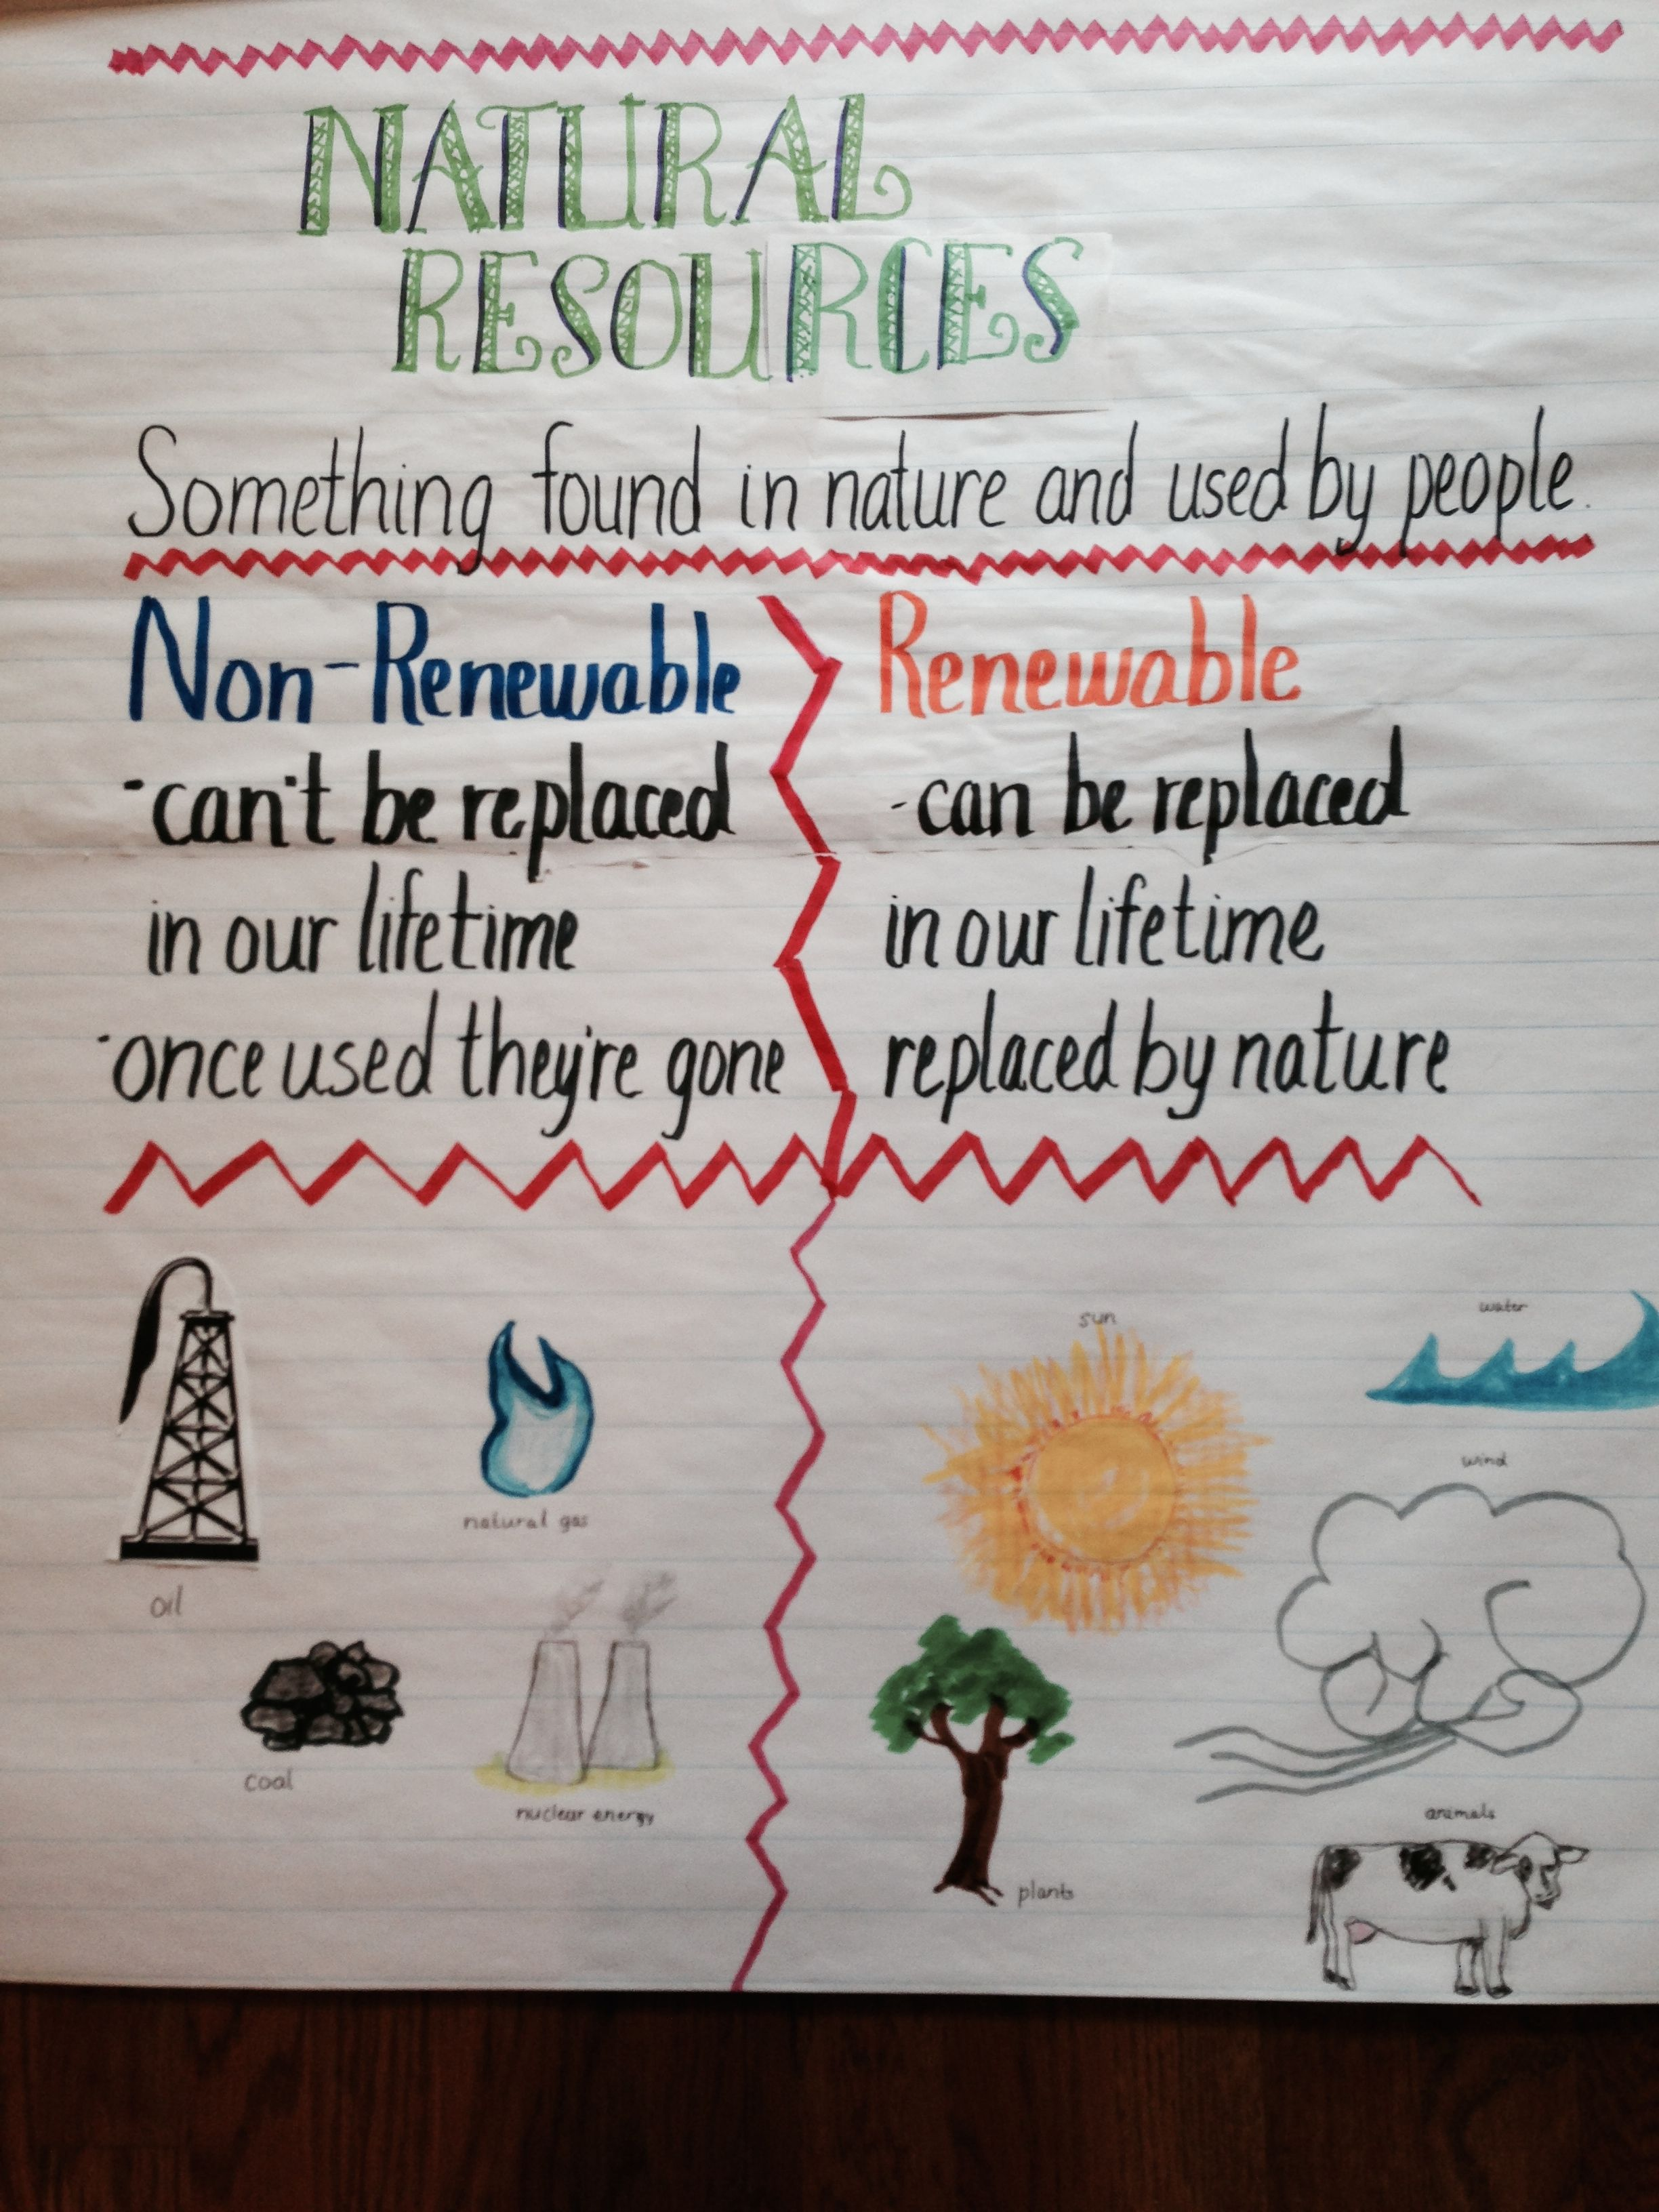 Studying Natural Resources Identify Non Renewable And